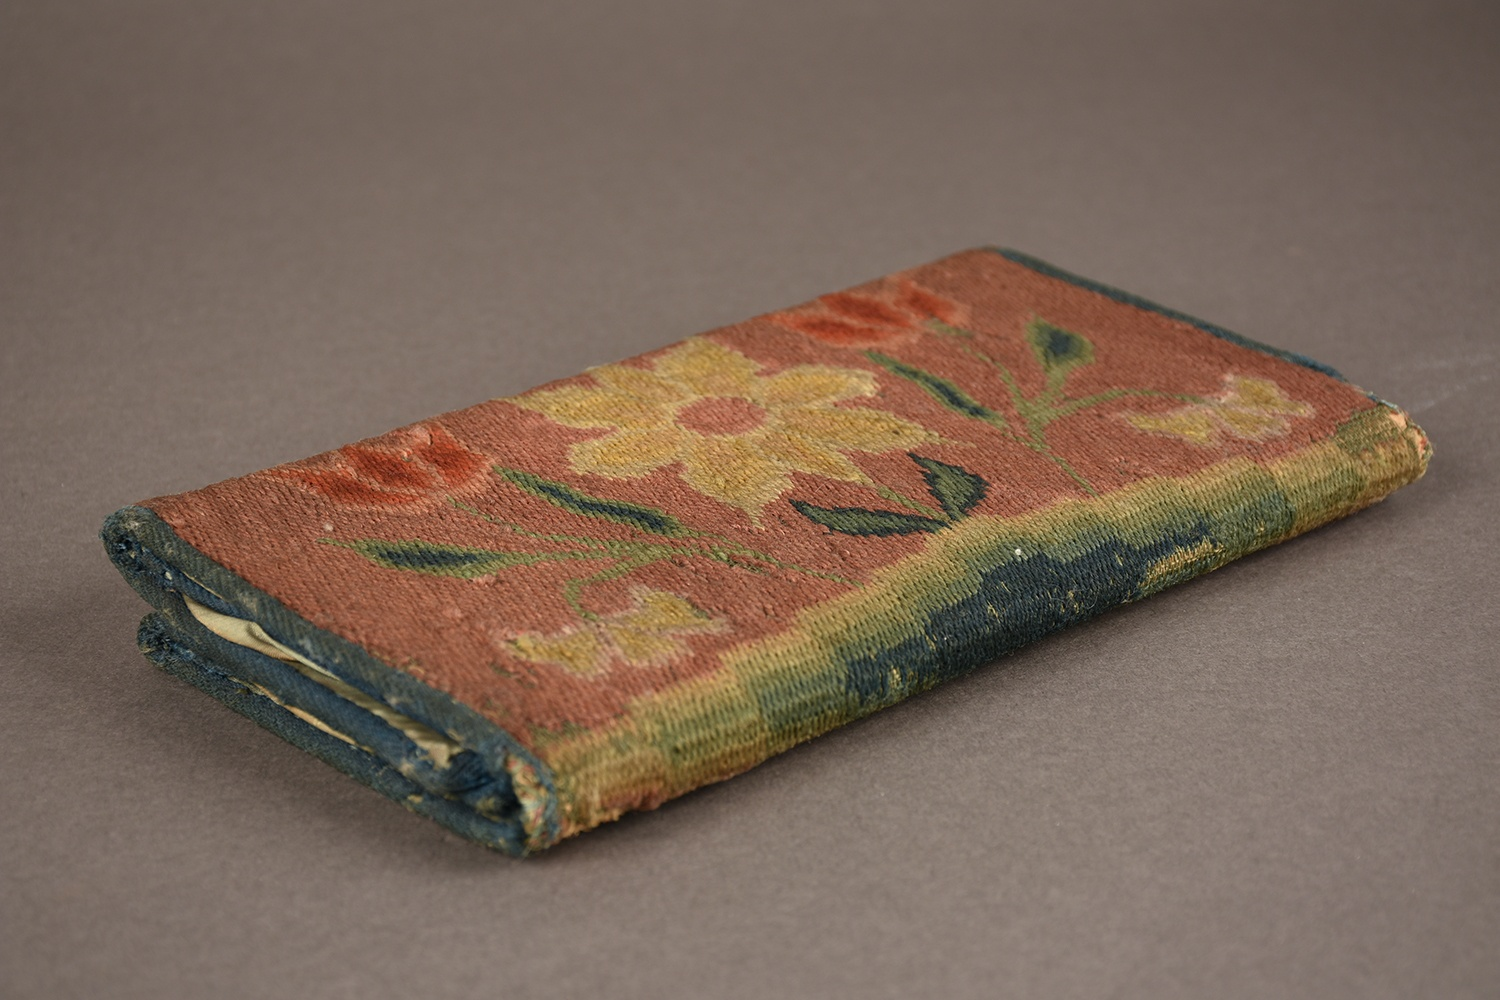 Embroidered Document Case, 1775. From the Heinz History Center Museum Collections.